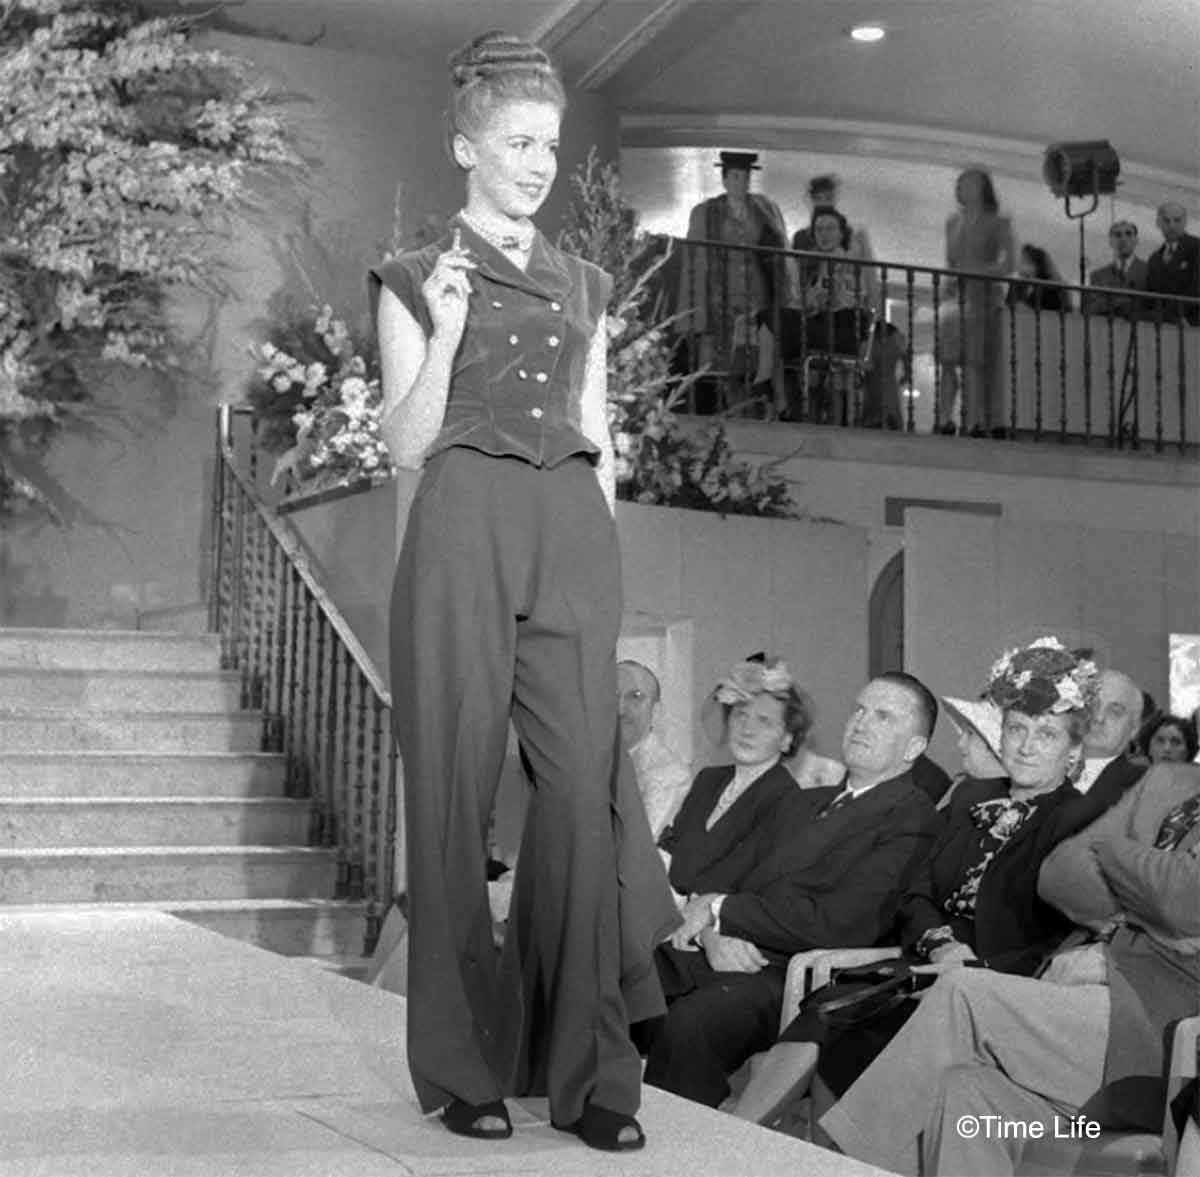 Neiman-Marcus---The-1940s-US-Fashion-Store7